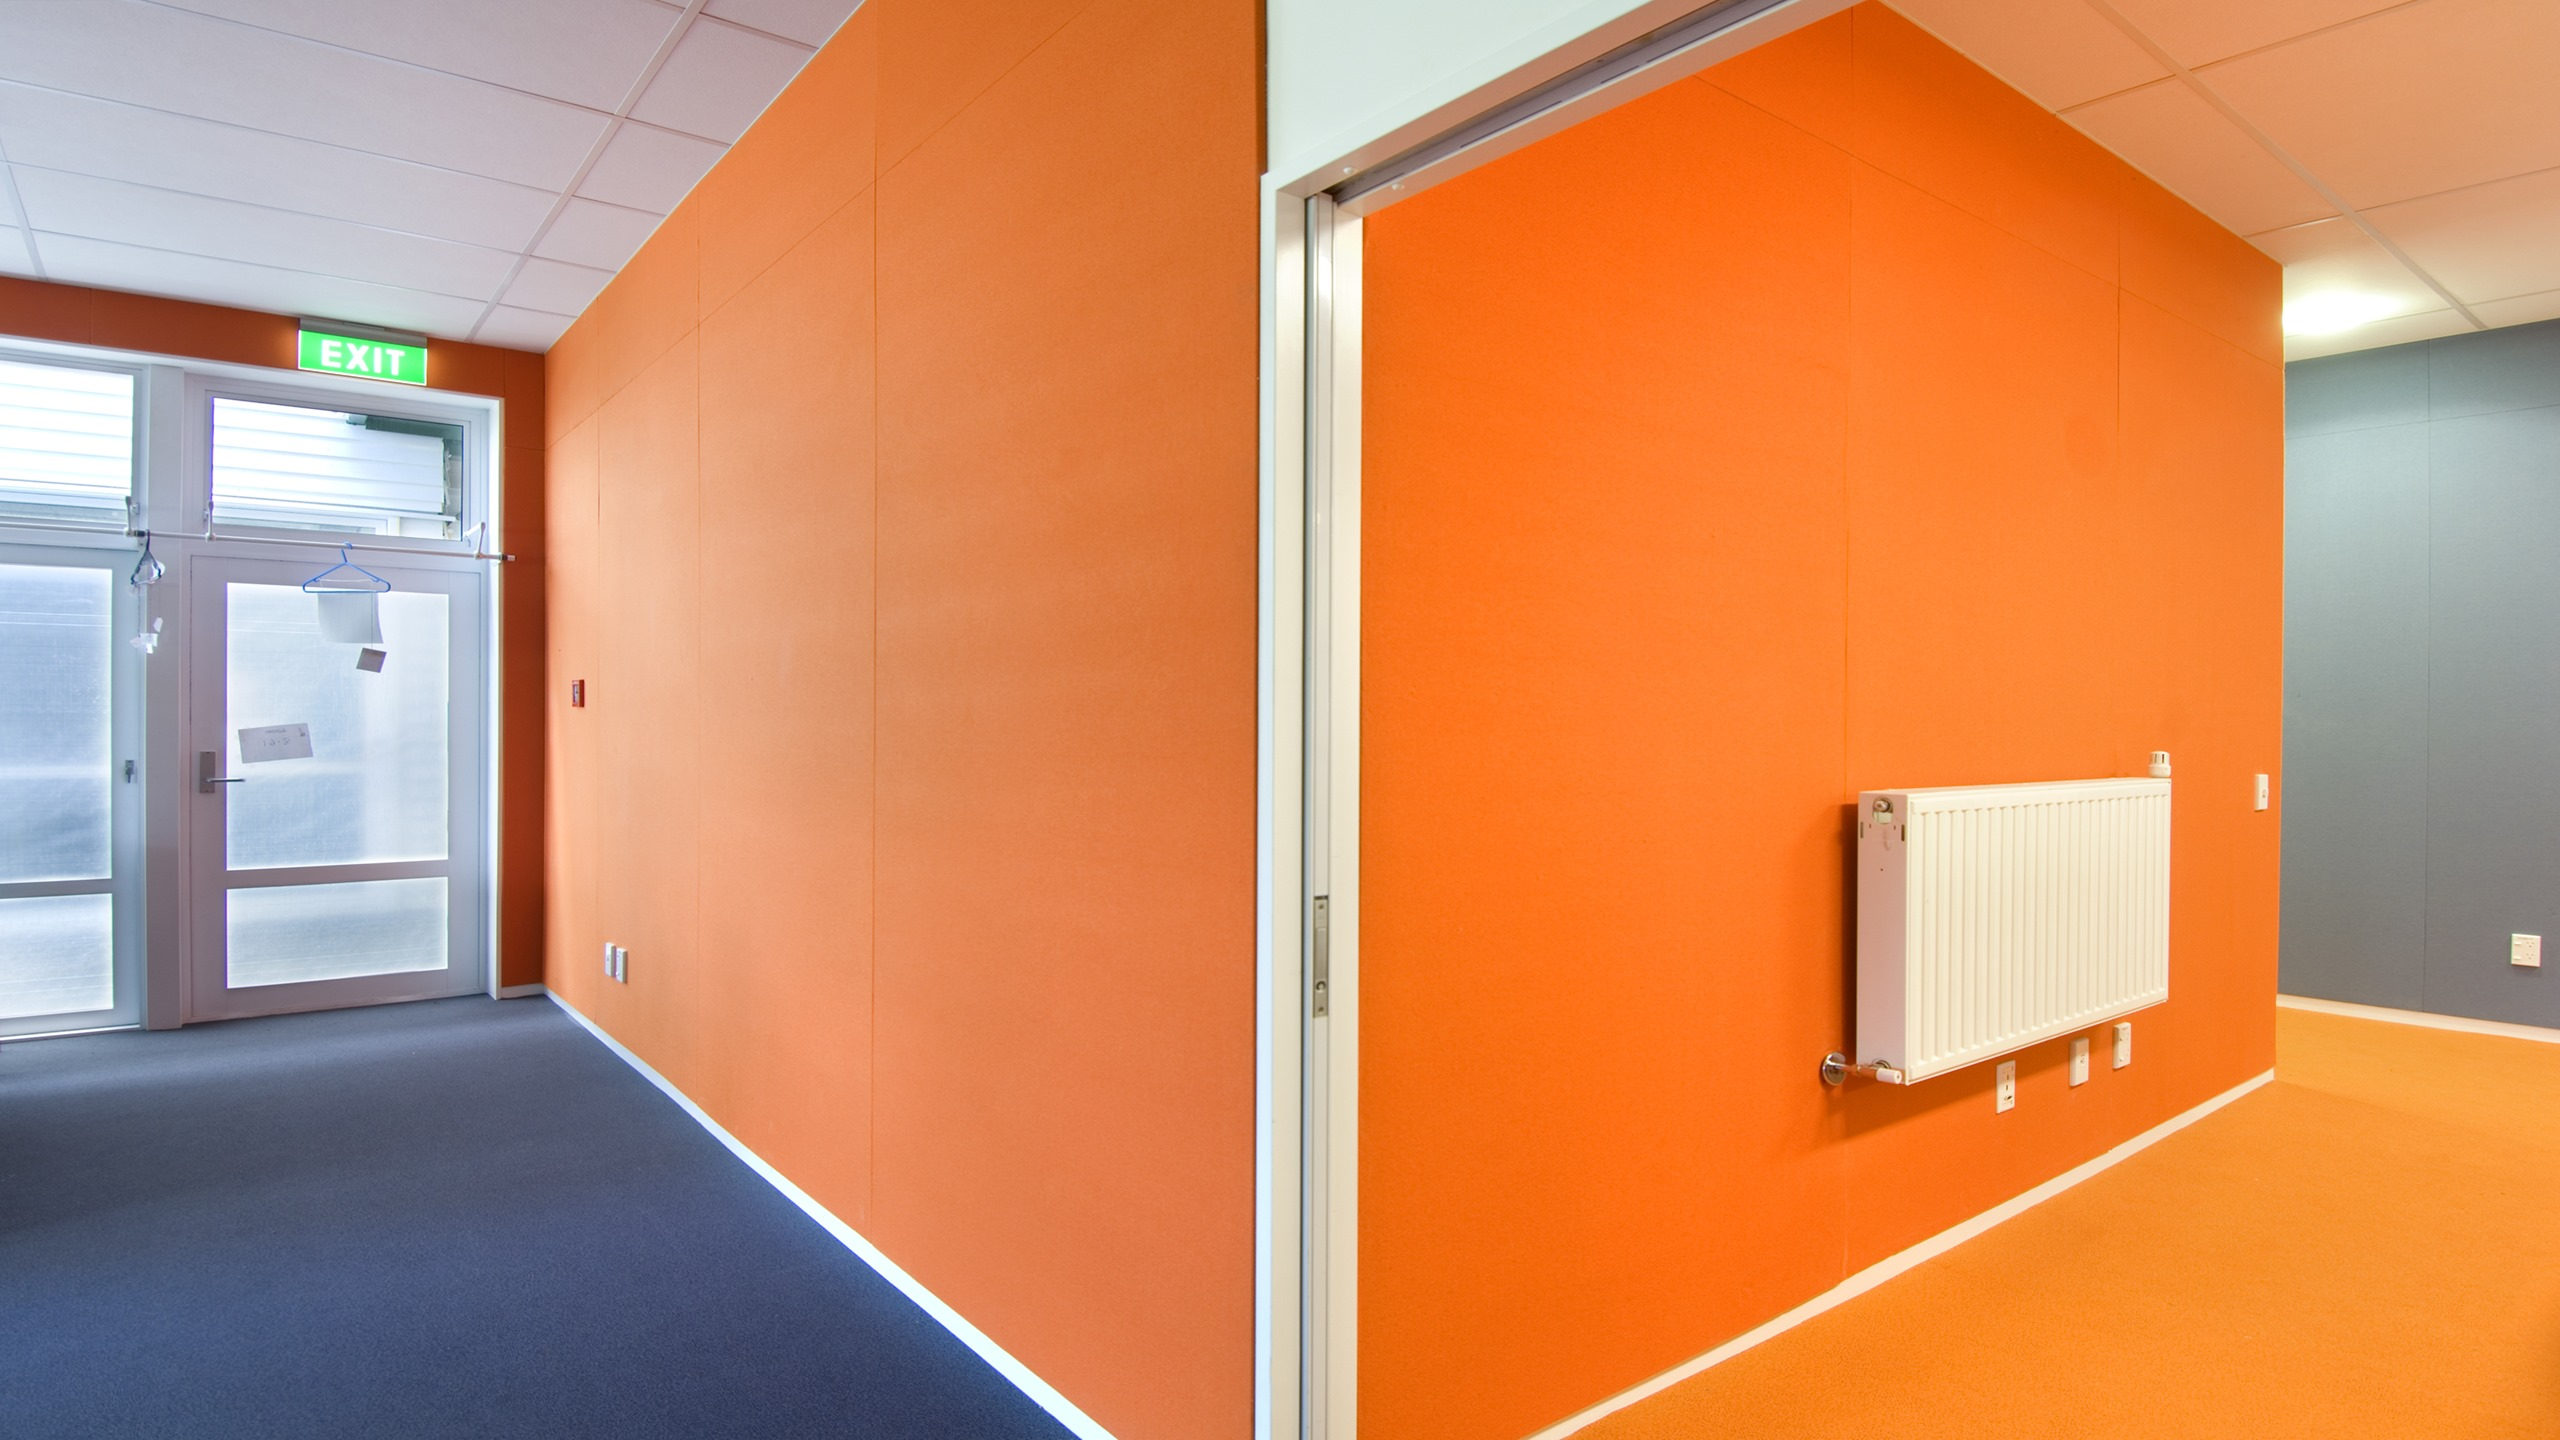 Premier Pinboard in orange fabric installed on to walls in a school hallway.